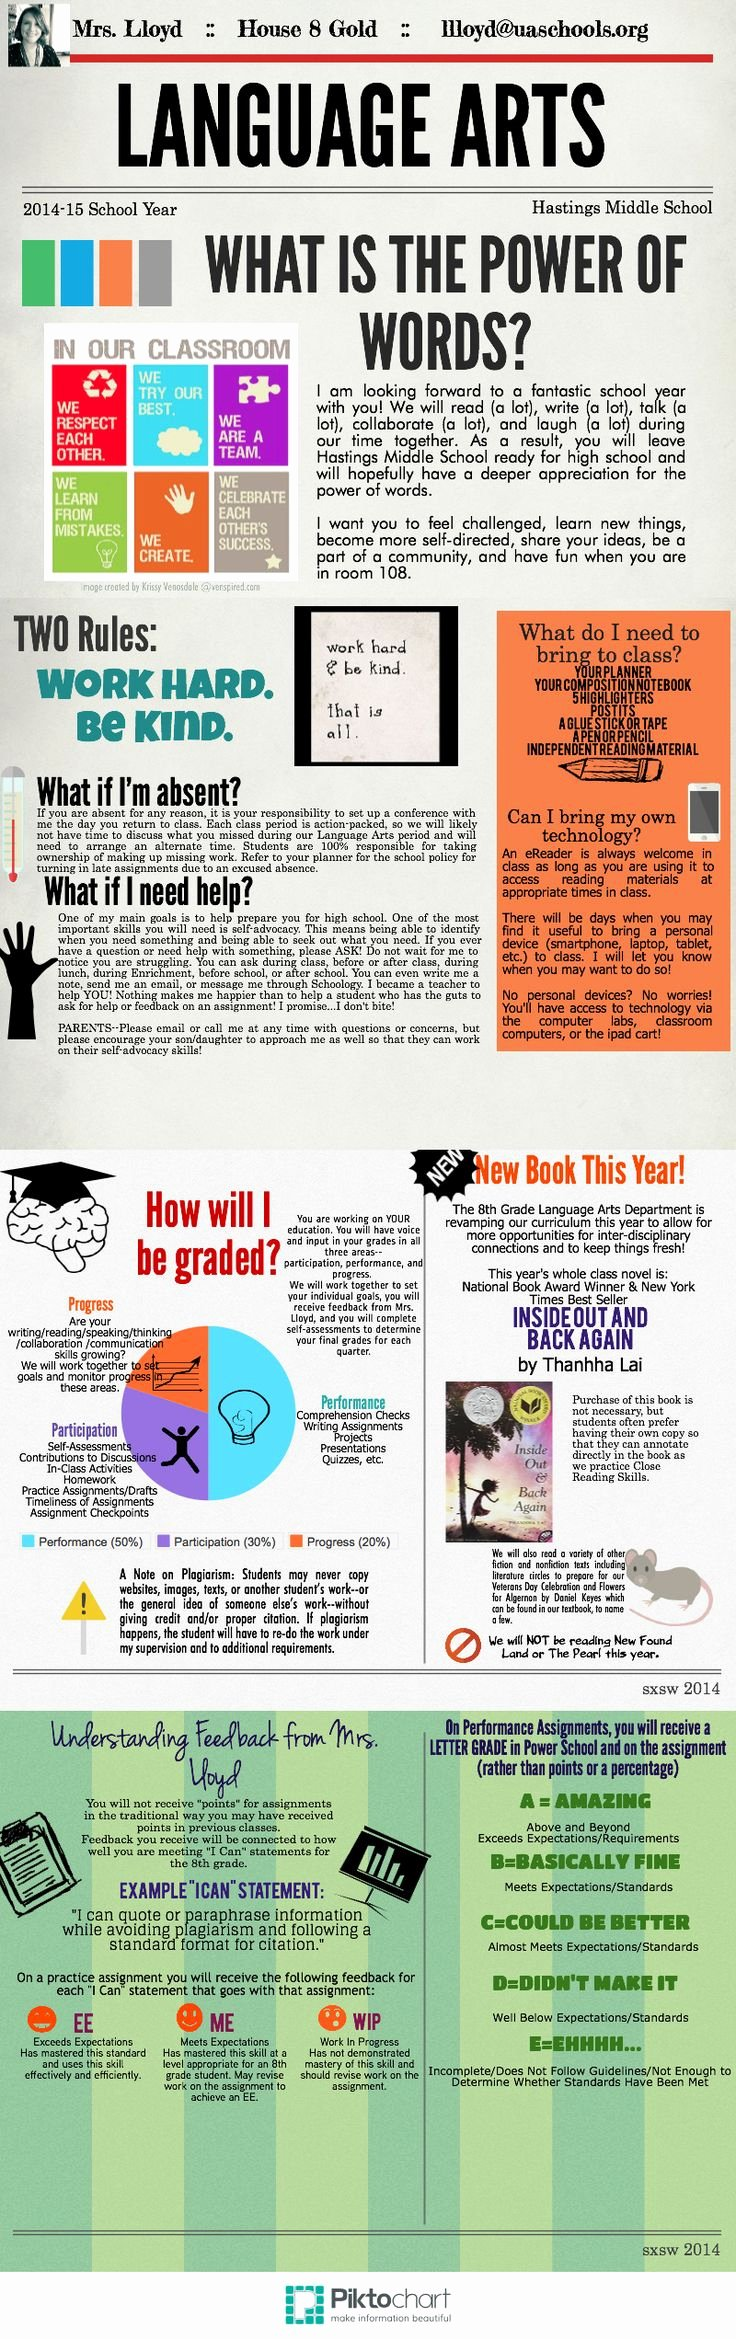 Middle School Science Syllabus Template New Best 25 Middle School Syllabus Ideas On Pinterest